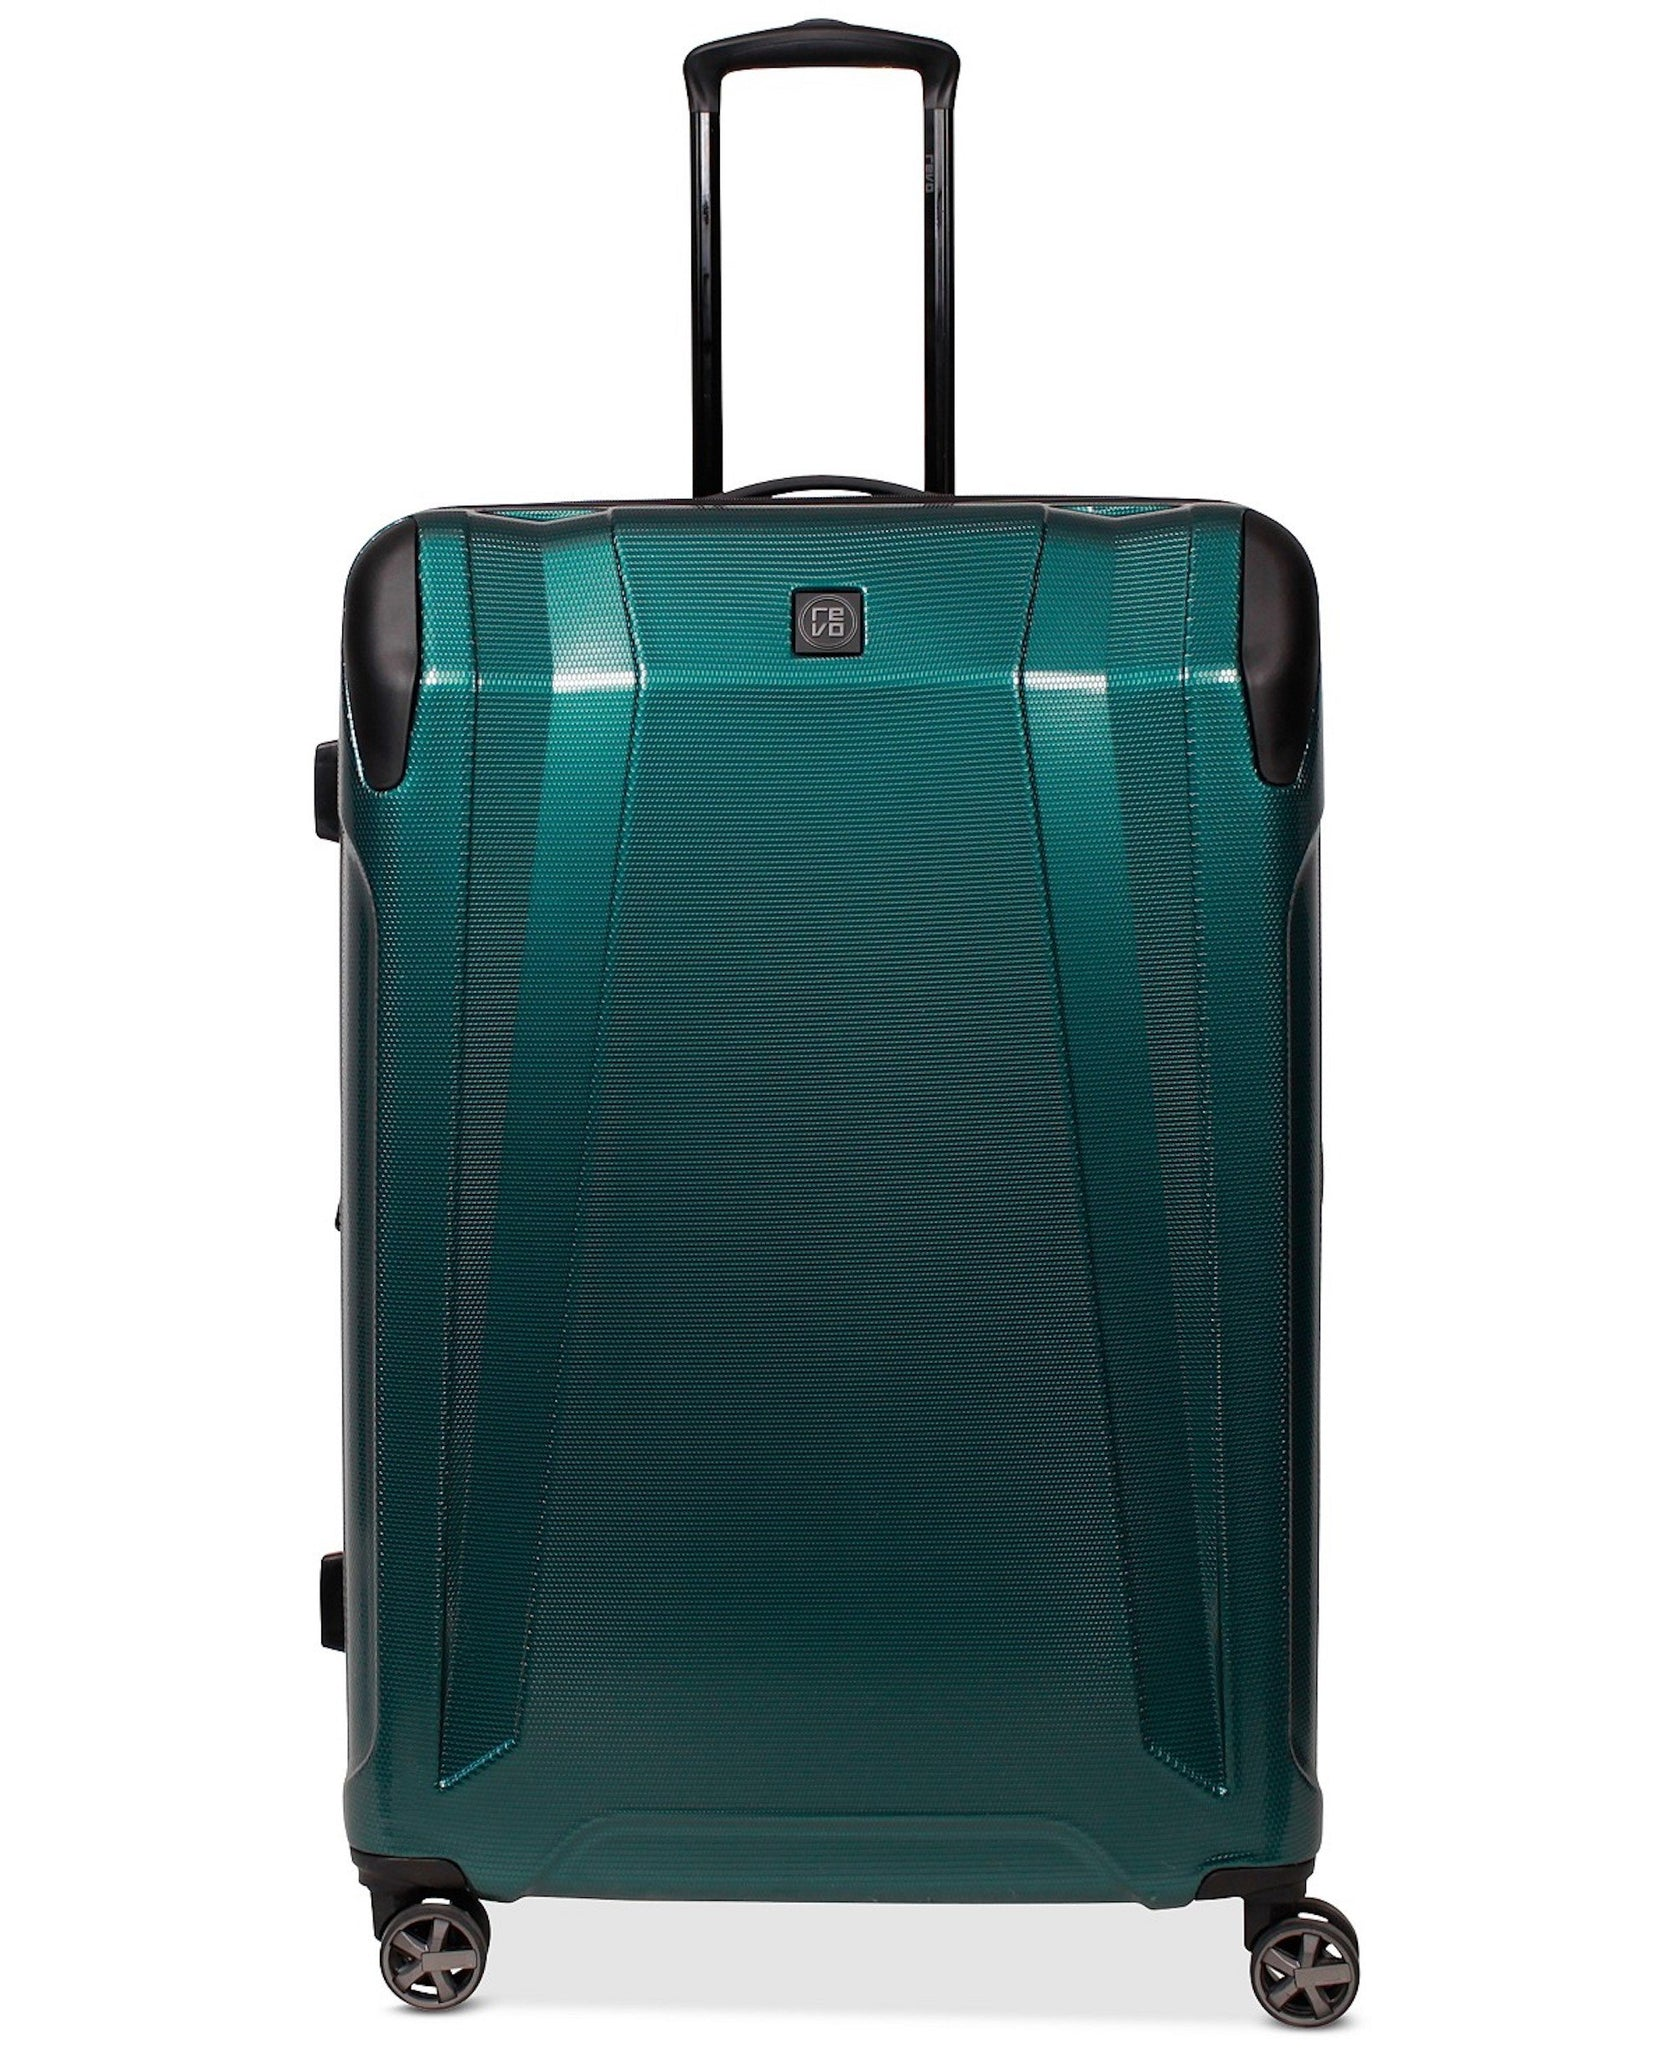 "$360 REVO Apex 29"" Expandable Hardside Spinner Suitcase Luggage Teal"